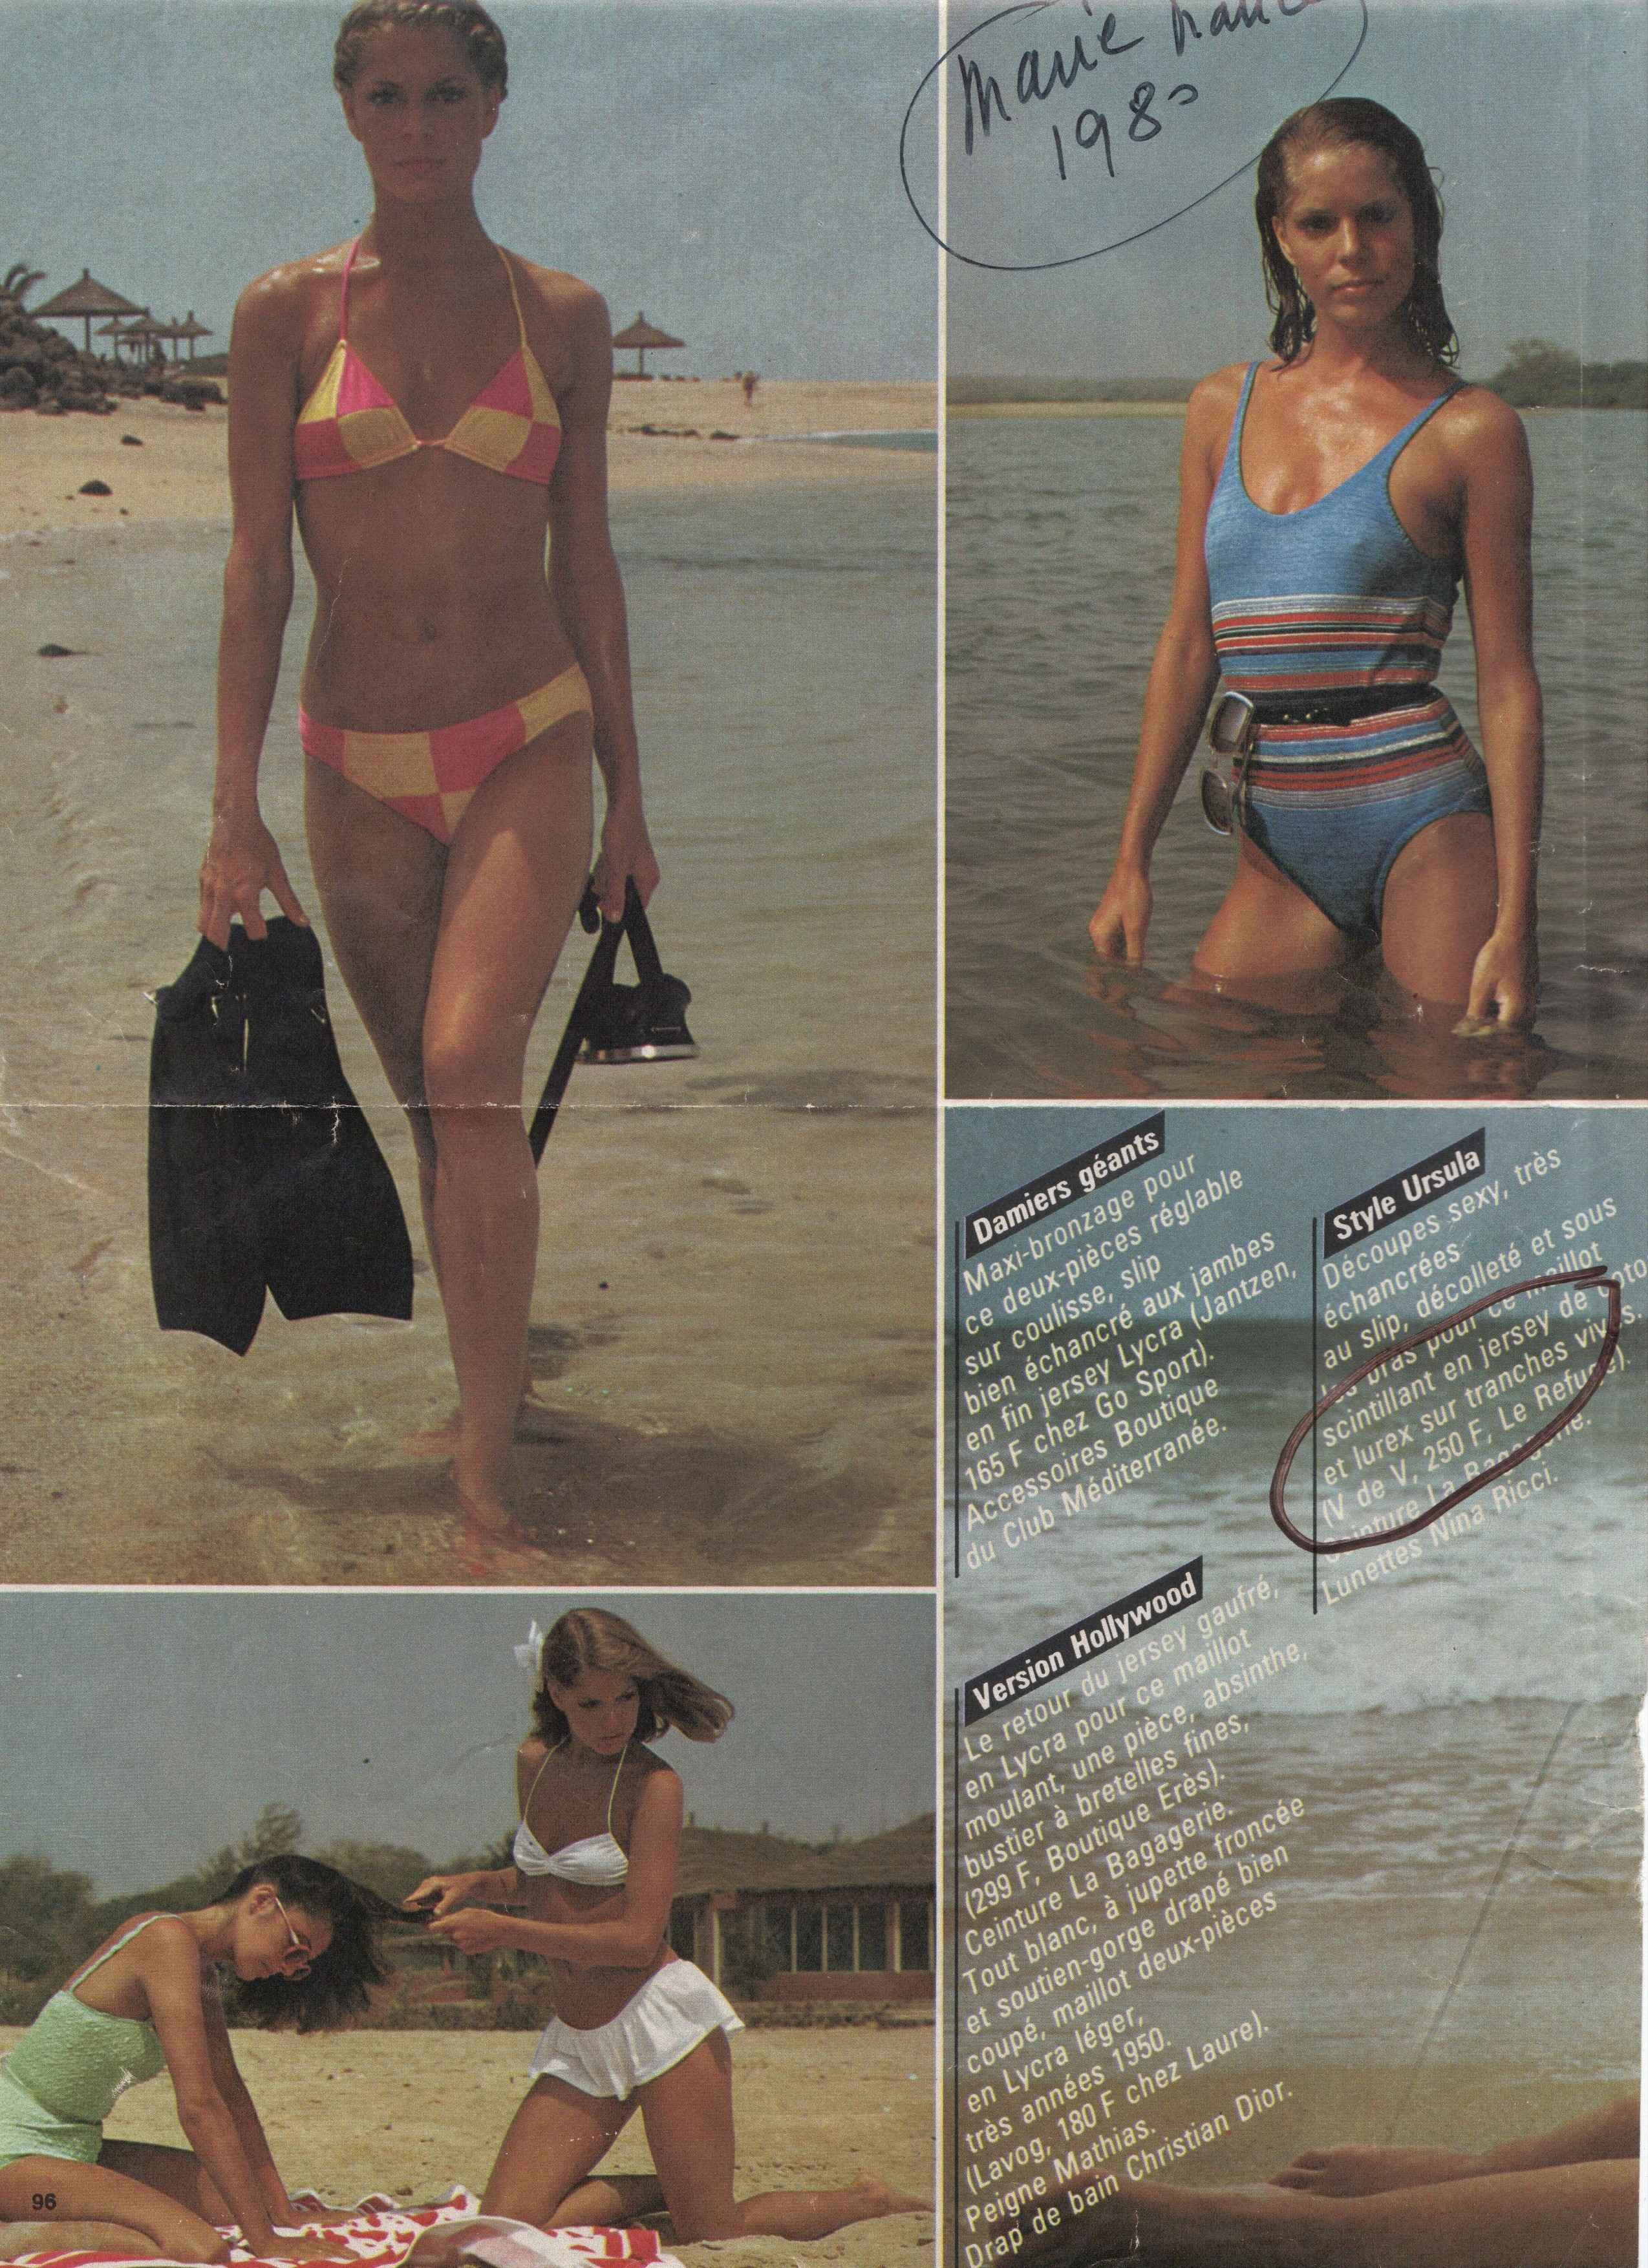 maillot de bain lurex (en haut  droite). Marie-France, 1980.